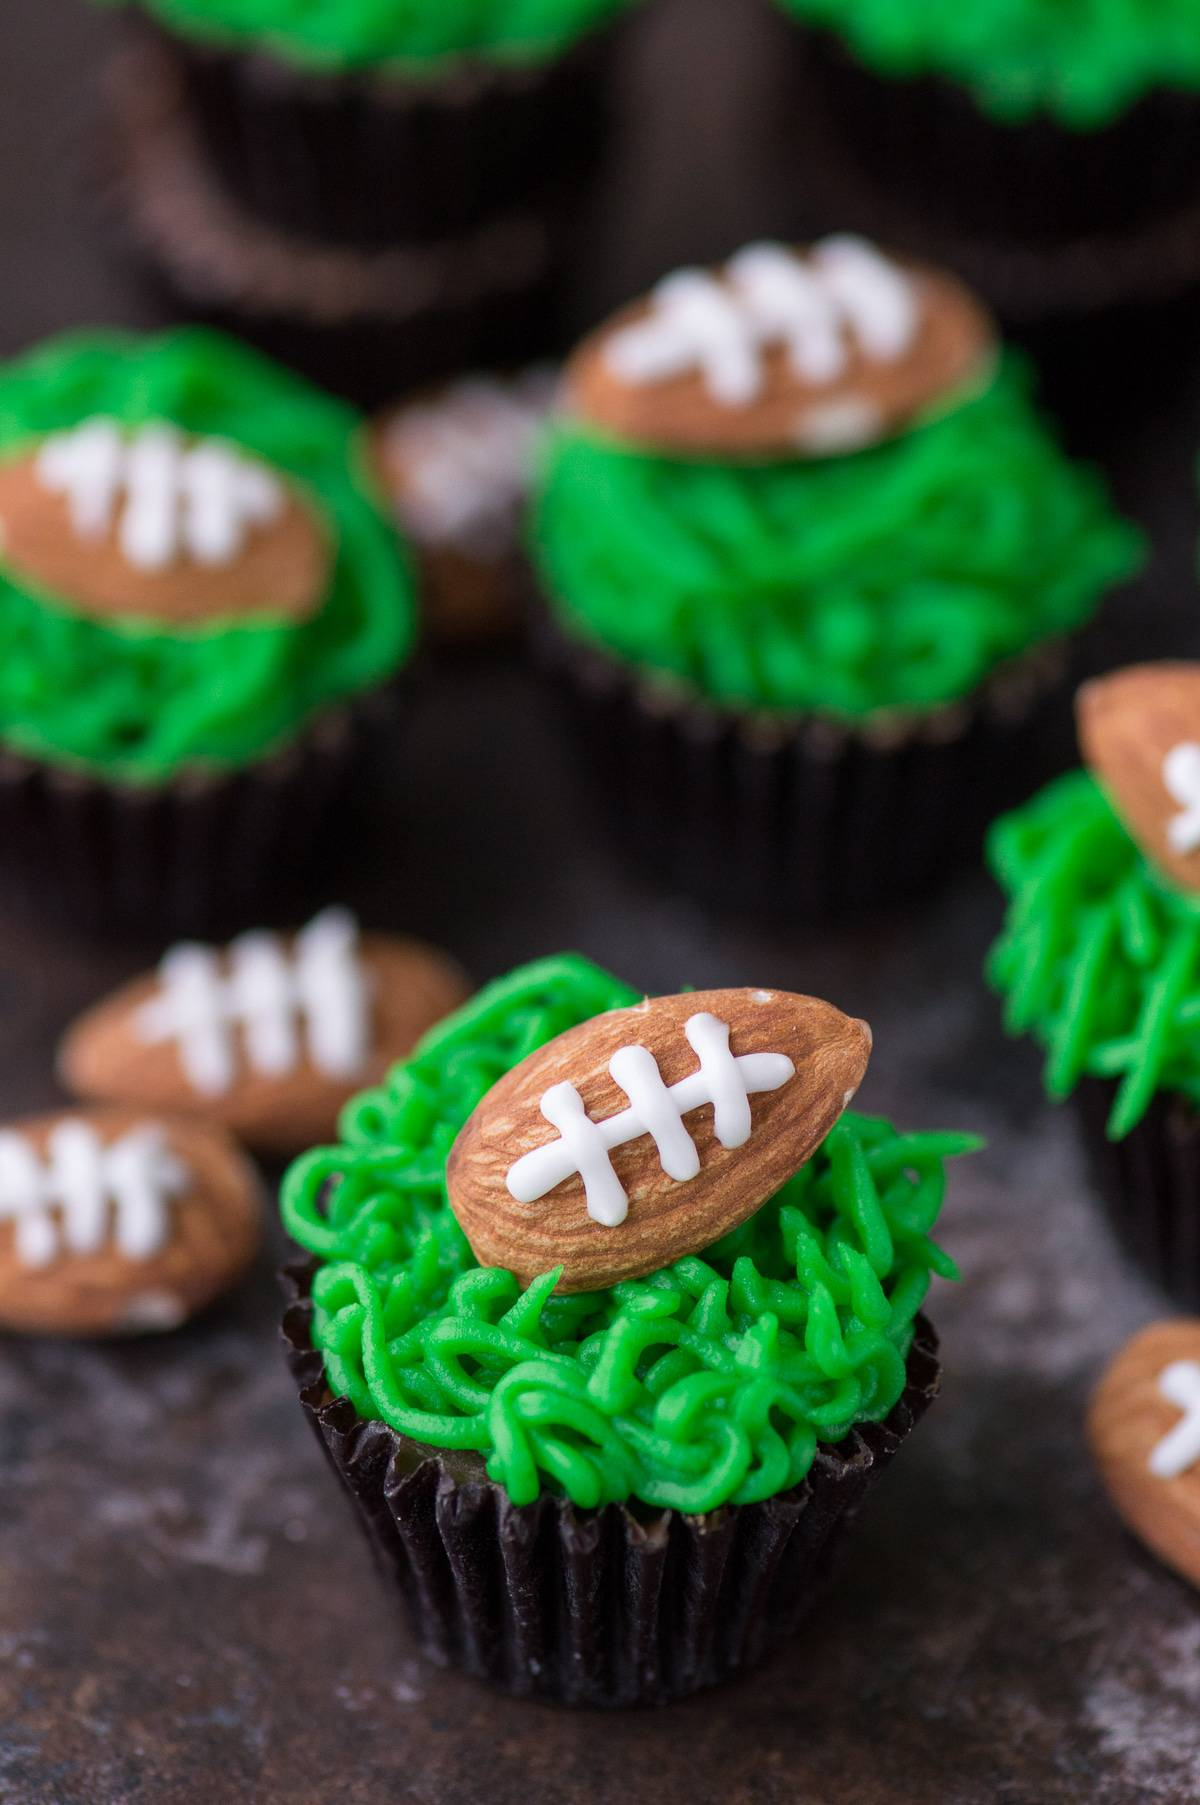 These reese's peanut butter football cups are the easiest game treat! You need peanut butter cups, green frosting and football almonds!